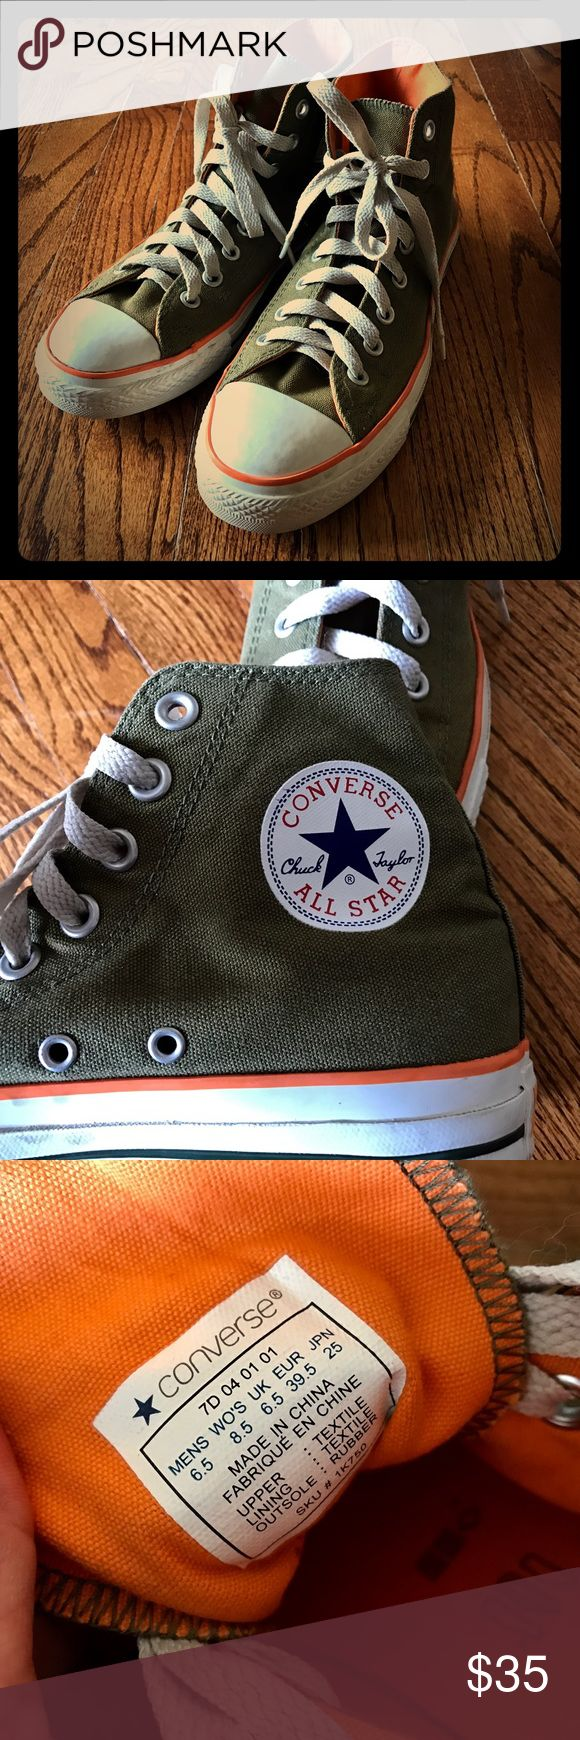 Army Green Orange Converse Chuck Taylor Sz 6.5 Army Green Orange Converse Chuck Taylor Sz 6.5         These Converse are in Like New Condition! Worn 1 time Converse Shoes Sneakers